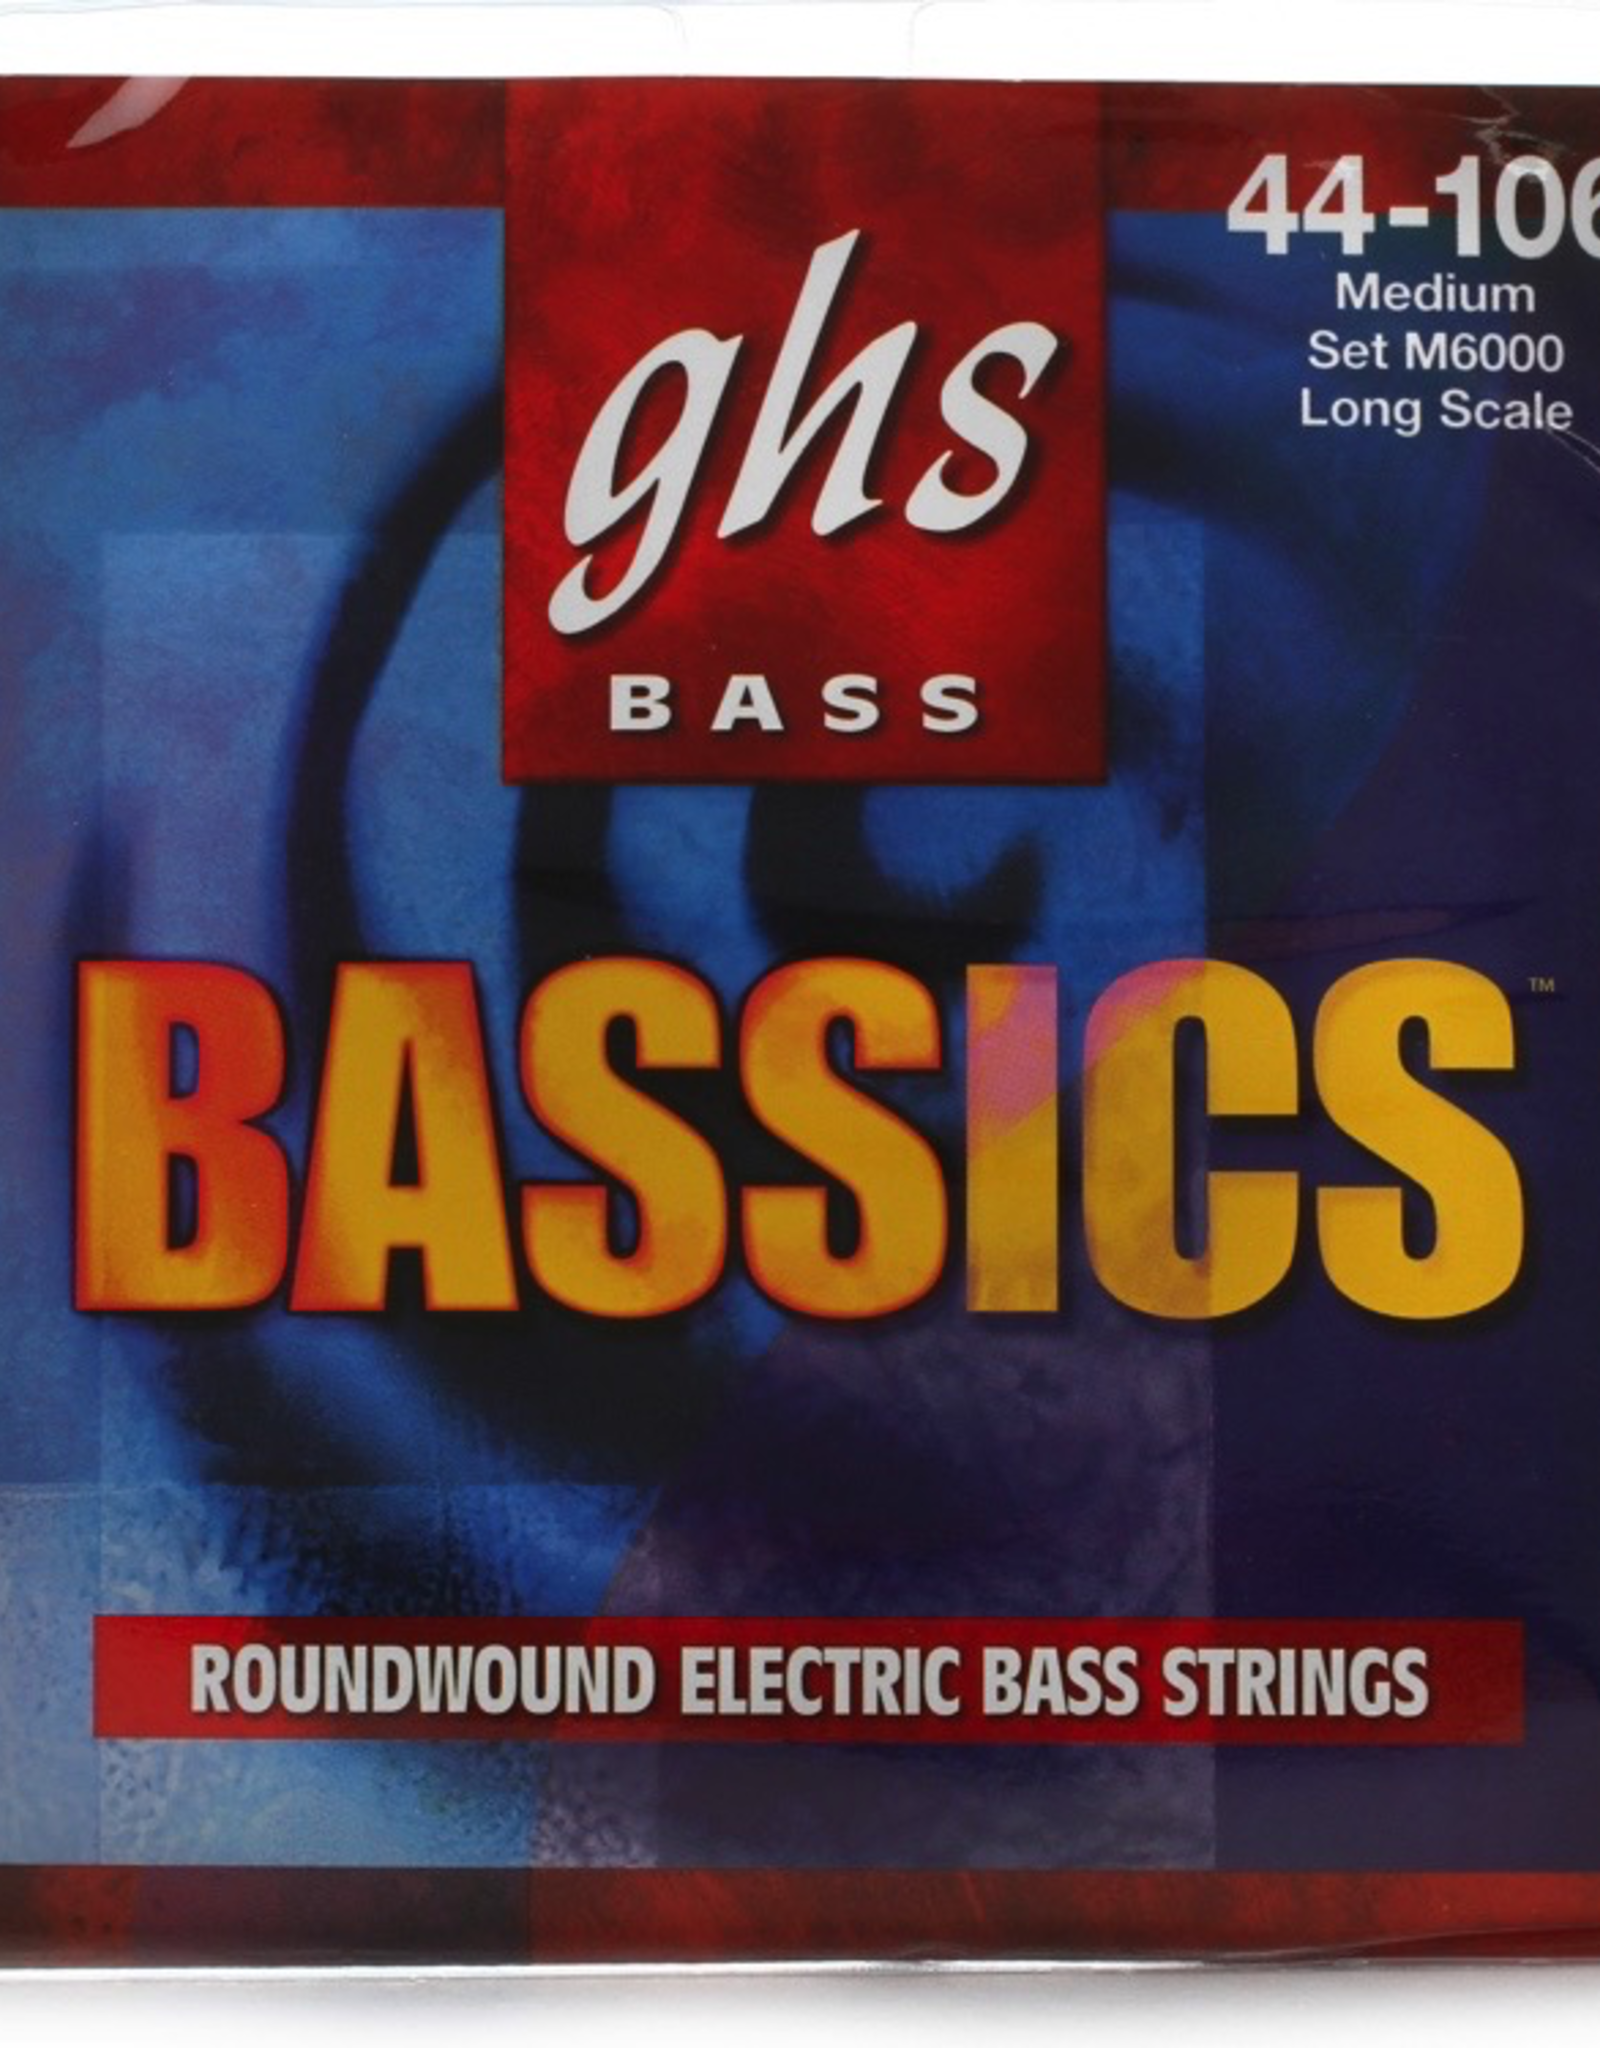 GHS GHS Bass Bassics Long Scale Bass Strings